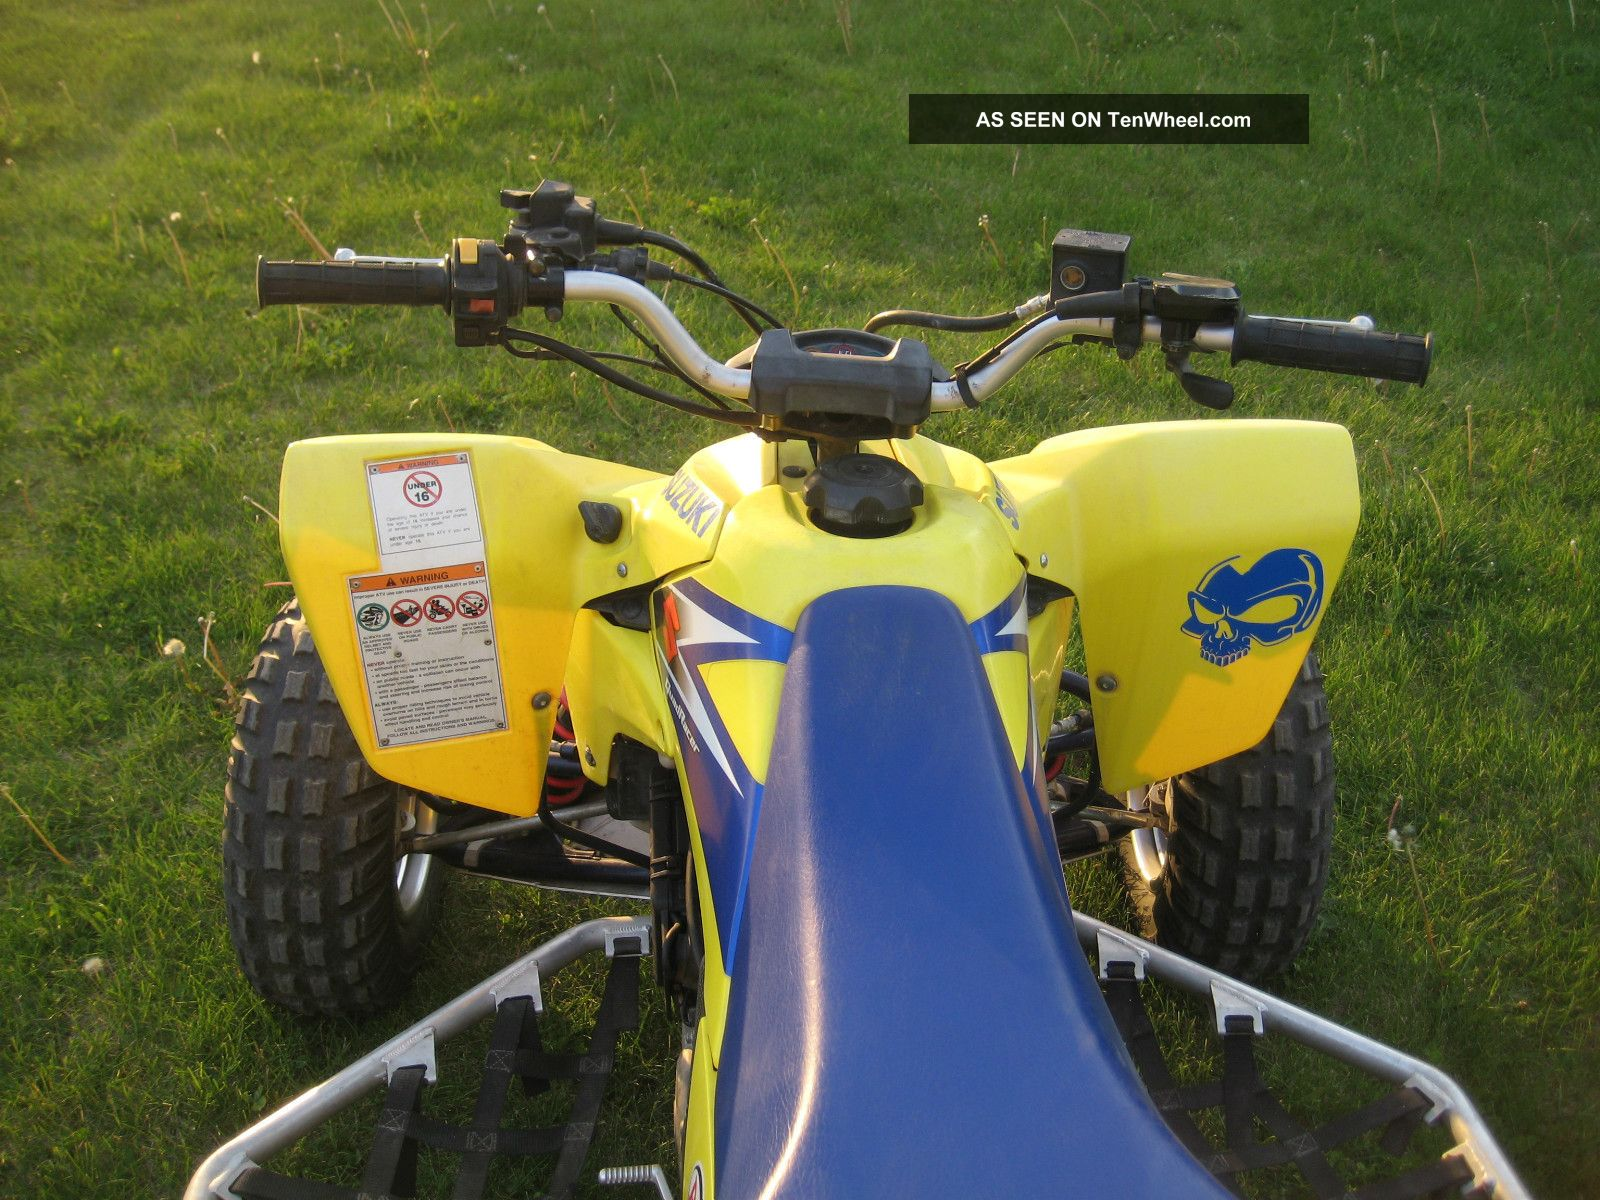 2013 suzuki rm z450 service repair and owner user manuals the rh chieransagang trendyshoesussaleonline info RM 450 RM 450